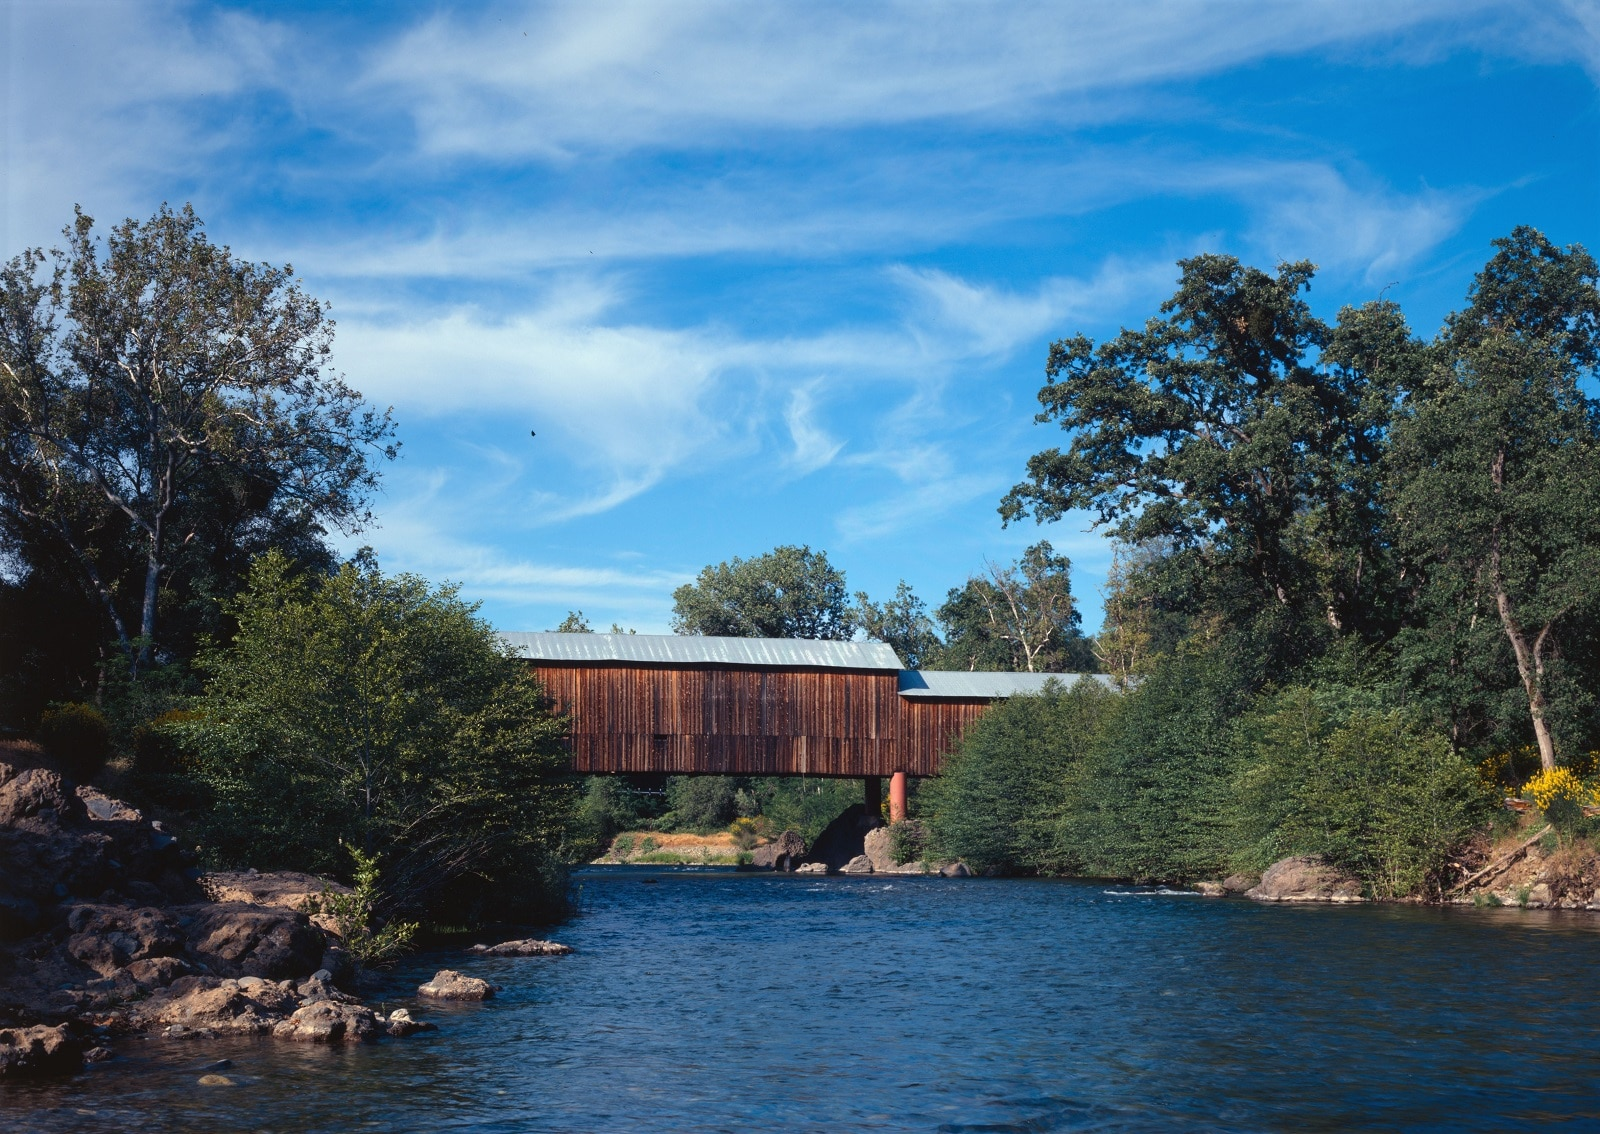 The Honey Run Covered Bridge — Butte County, California: The historic bridge was built in 1886 and was the only covered bridge in the US with three unequal sections and was listed on the National Register of Historic Places. However, it was burned down in the camp fire that devastated Northern California in 2018.